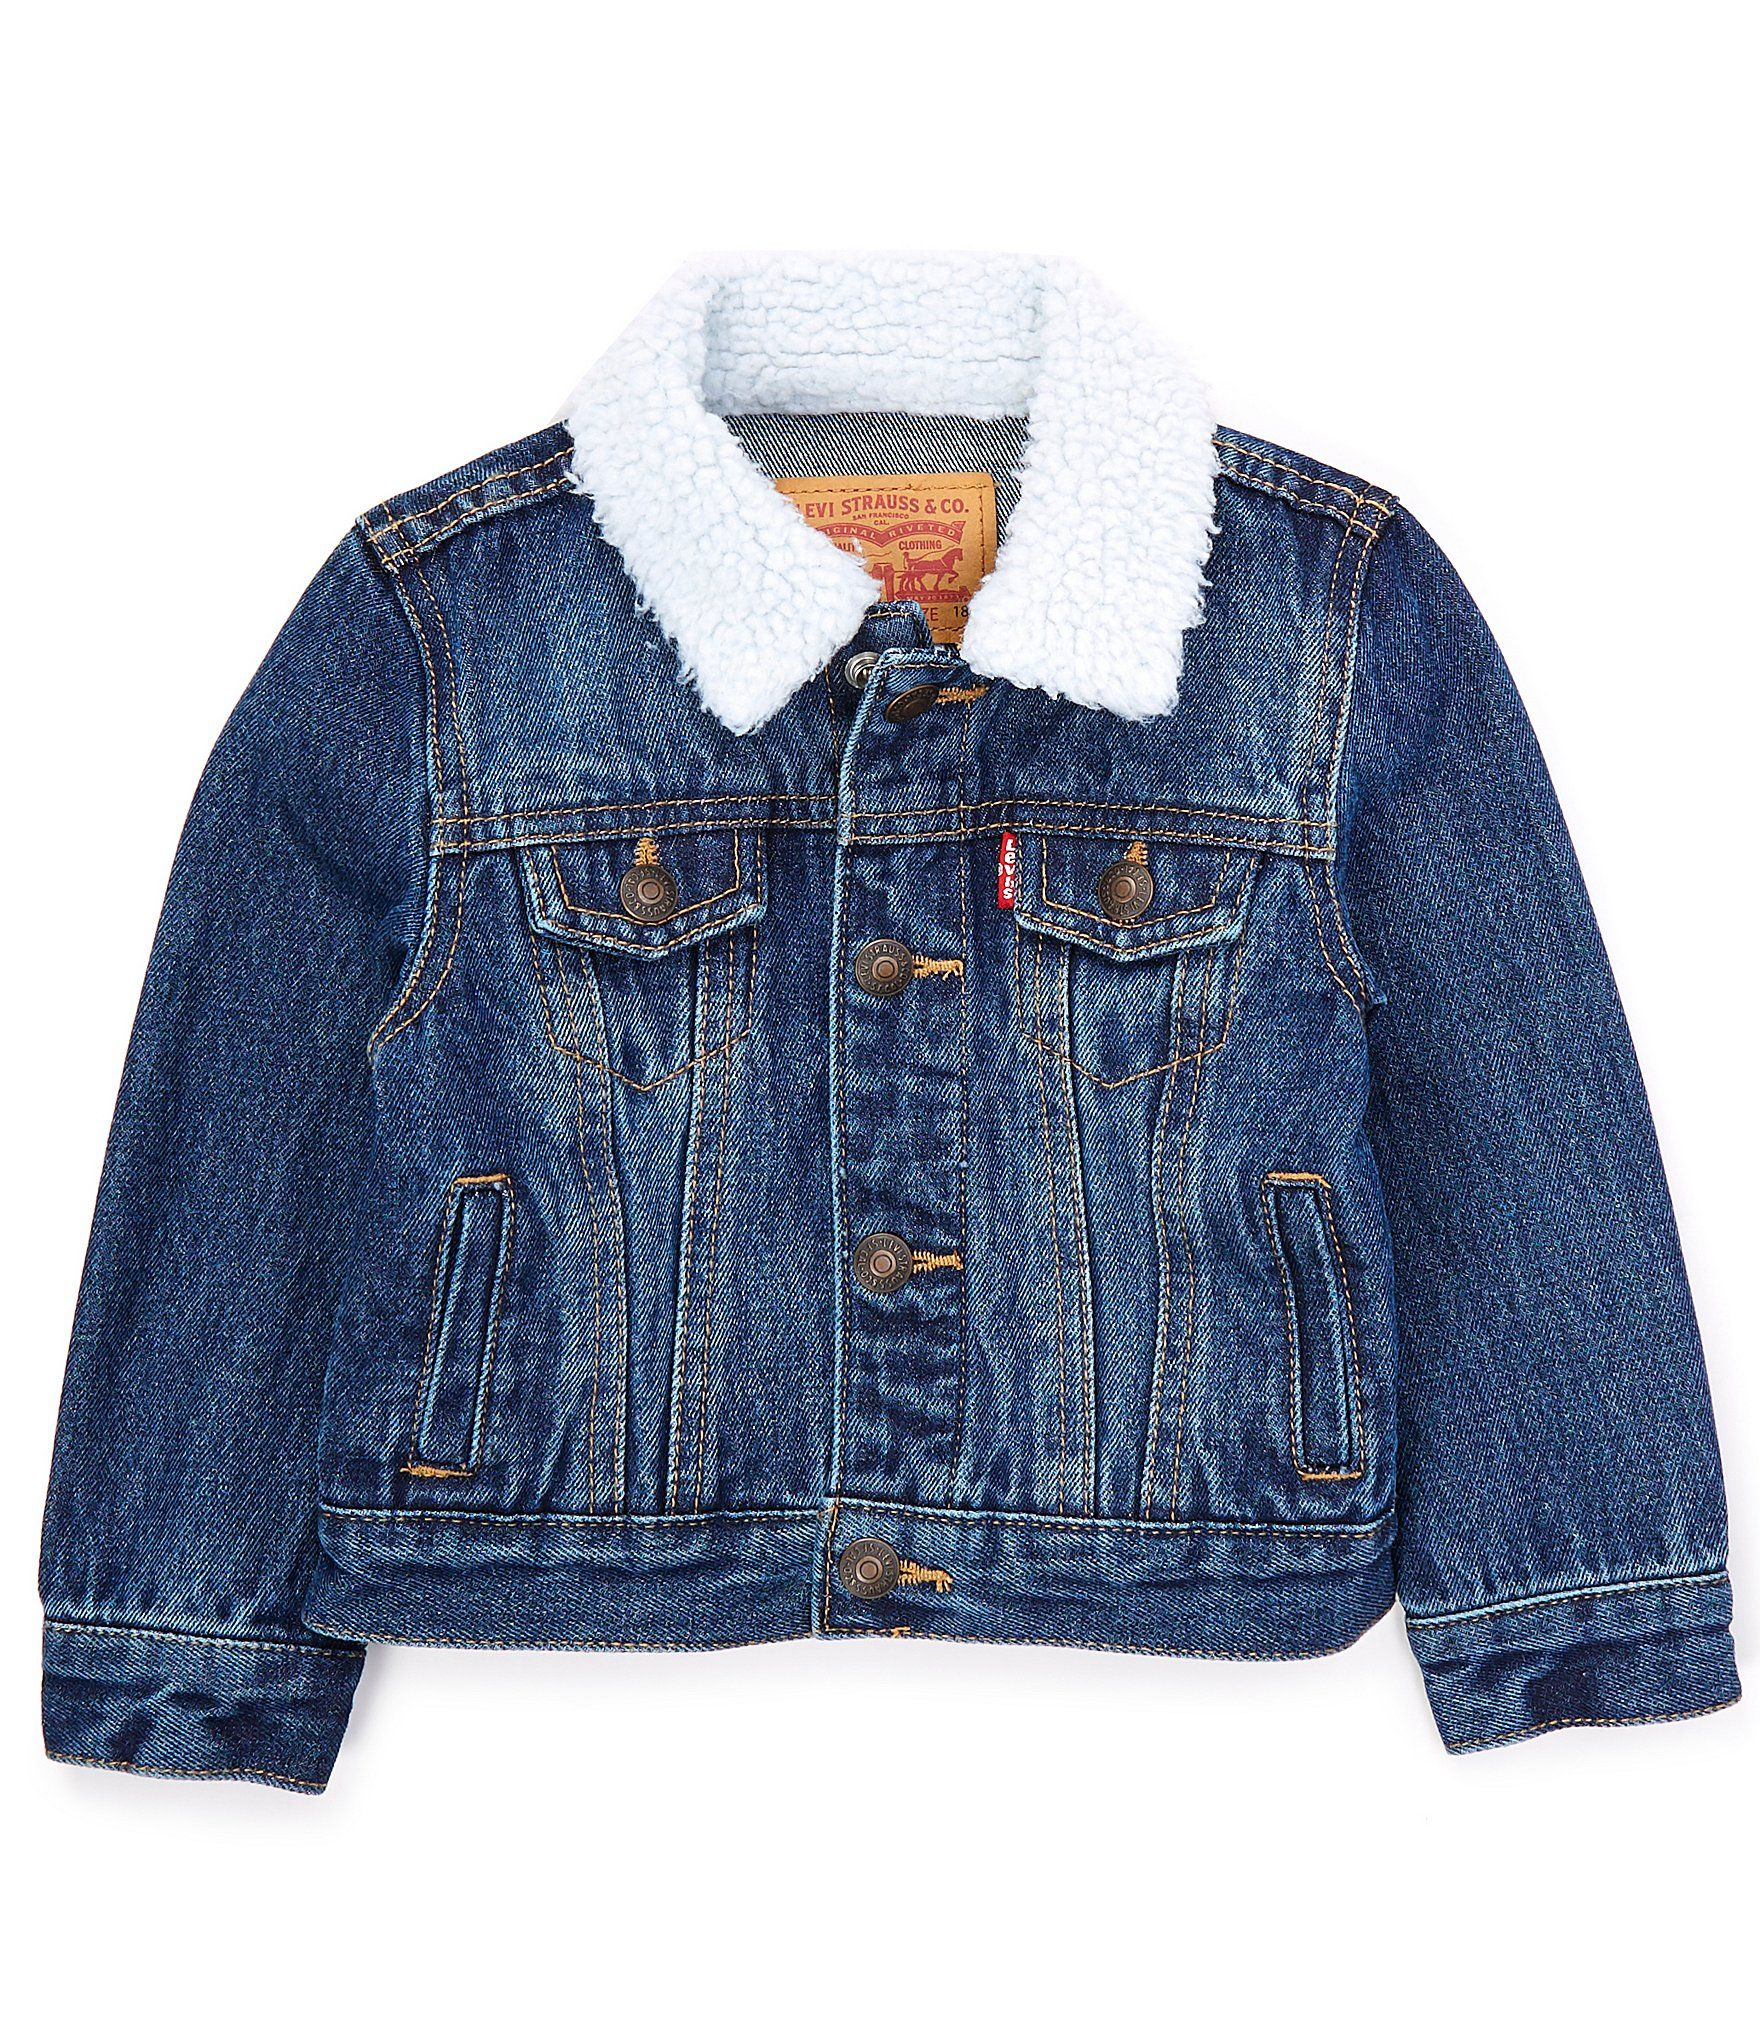 Levi S Baby Boys 12 24 Months Sherpa Denim Trucker Jacket Dillard S In 2020 Baby Boy Jeans Cute Baby Clothes Baby Clothes [ 2040 x 1760 Pixel ]